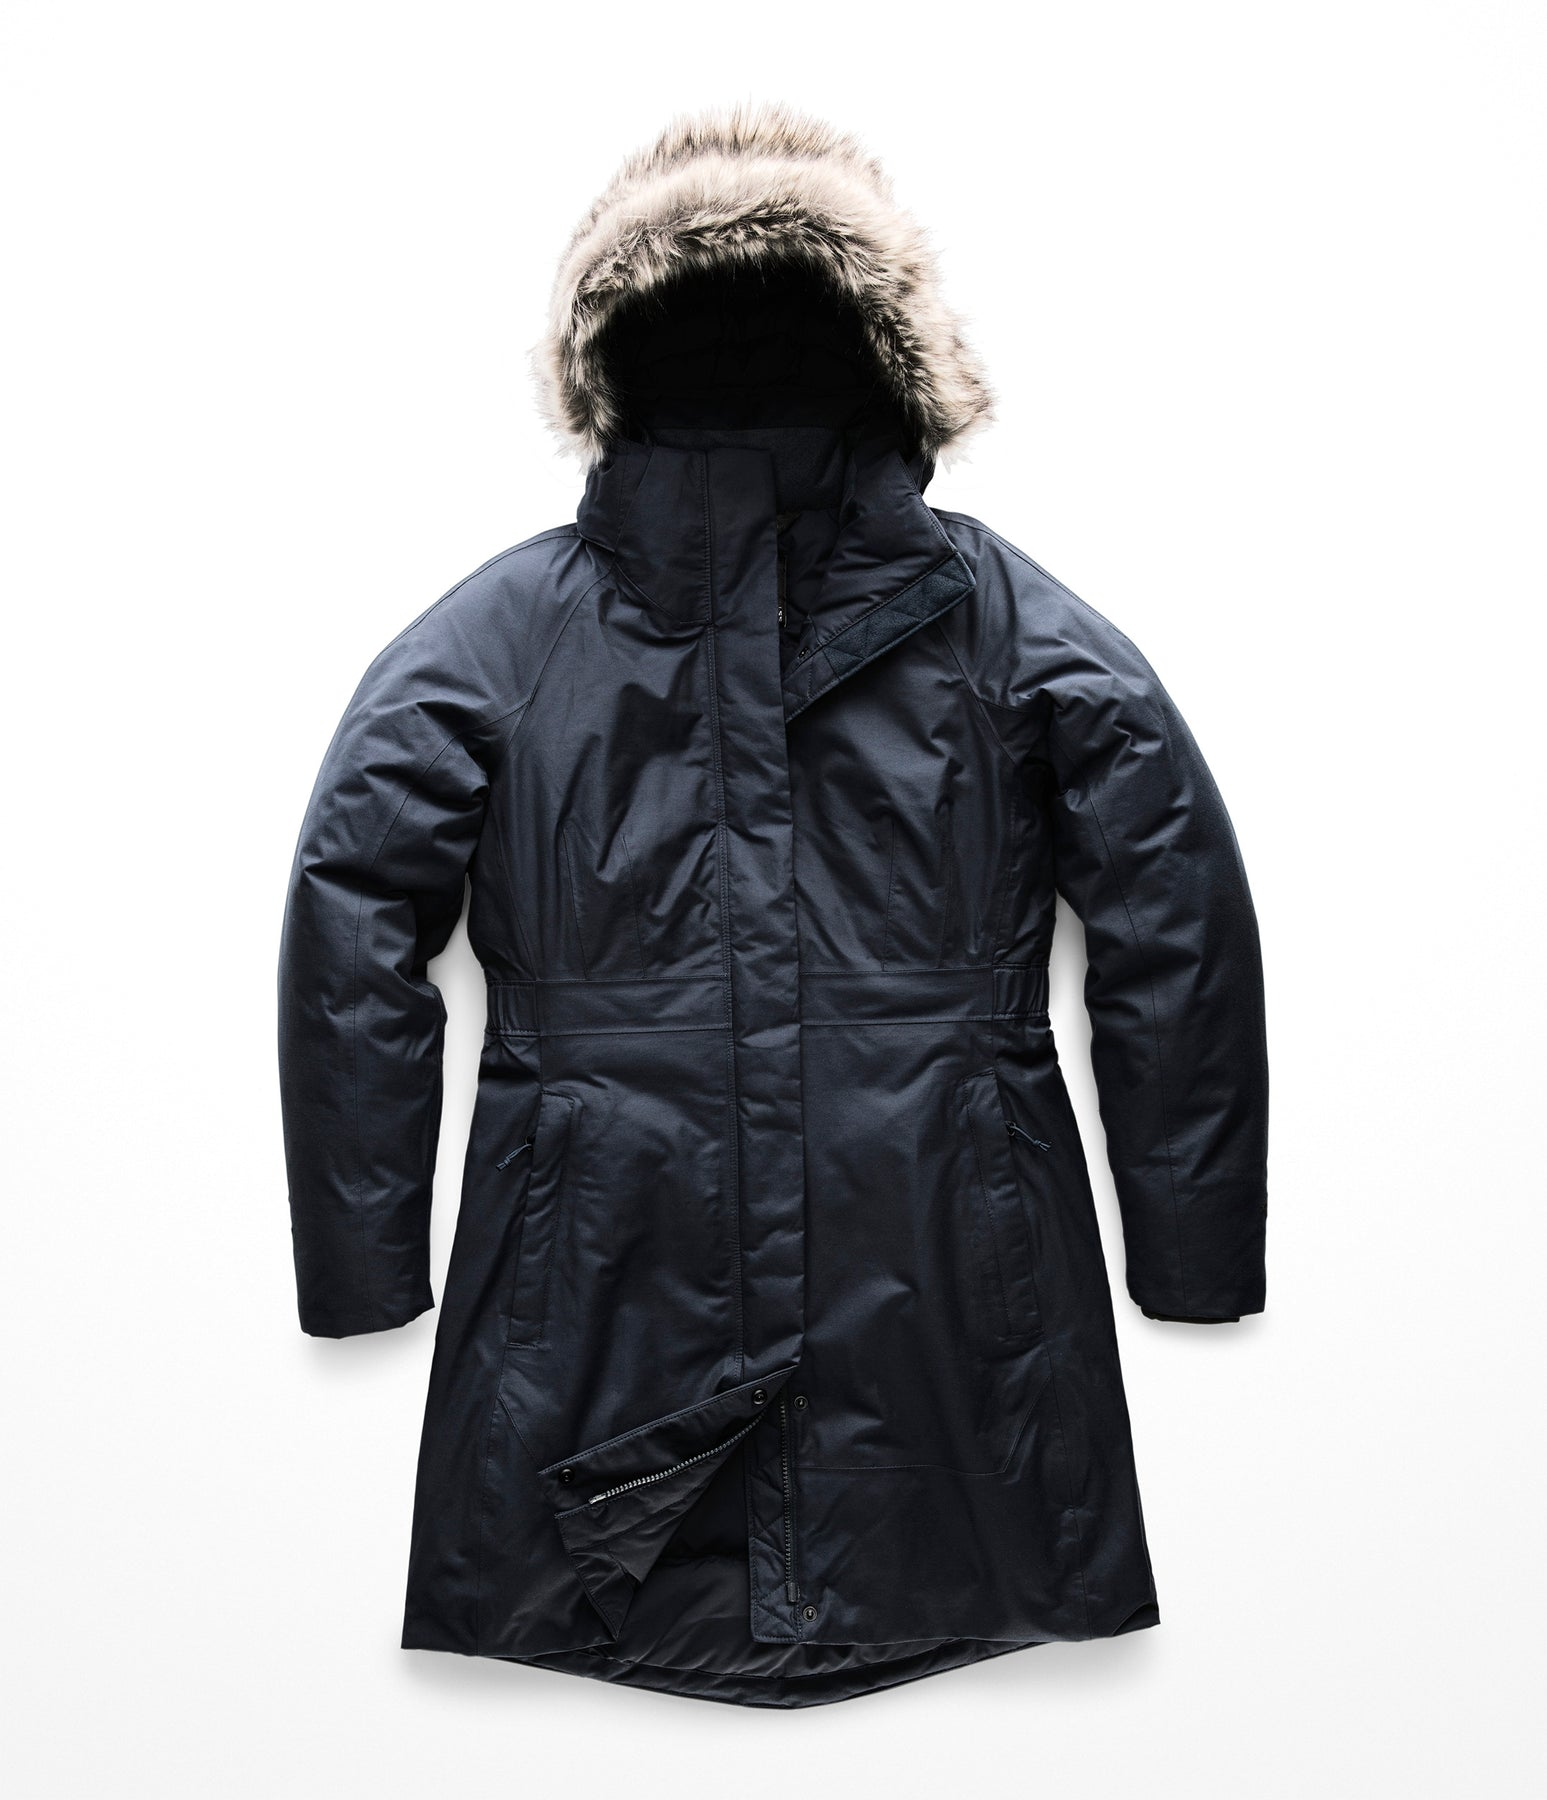 fd2f0bbf7 The North Face Women's Arctic Parka II – Urban Navy